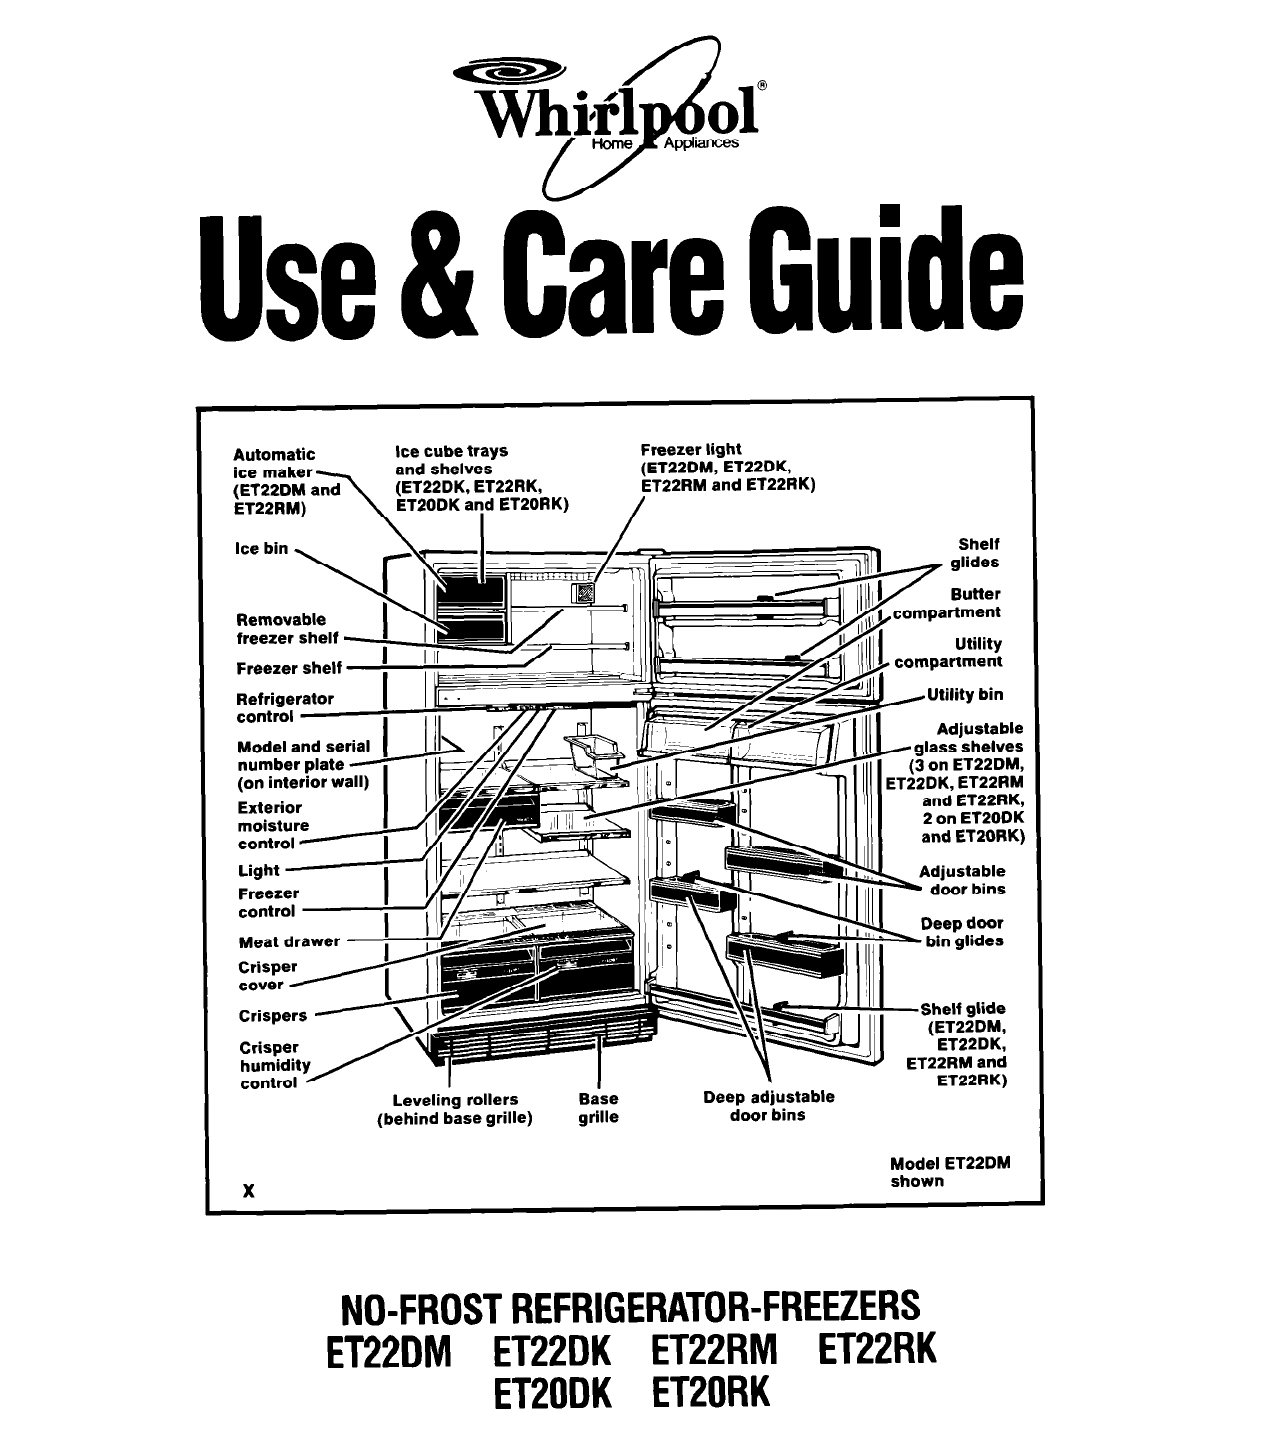 whirlpool refrigerator schematic wiring diagram bookmark Commercial Freezer Defrost Timer Diagram